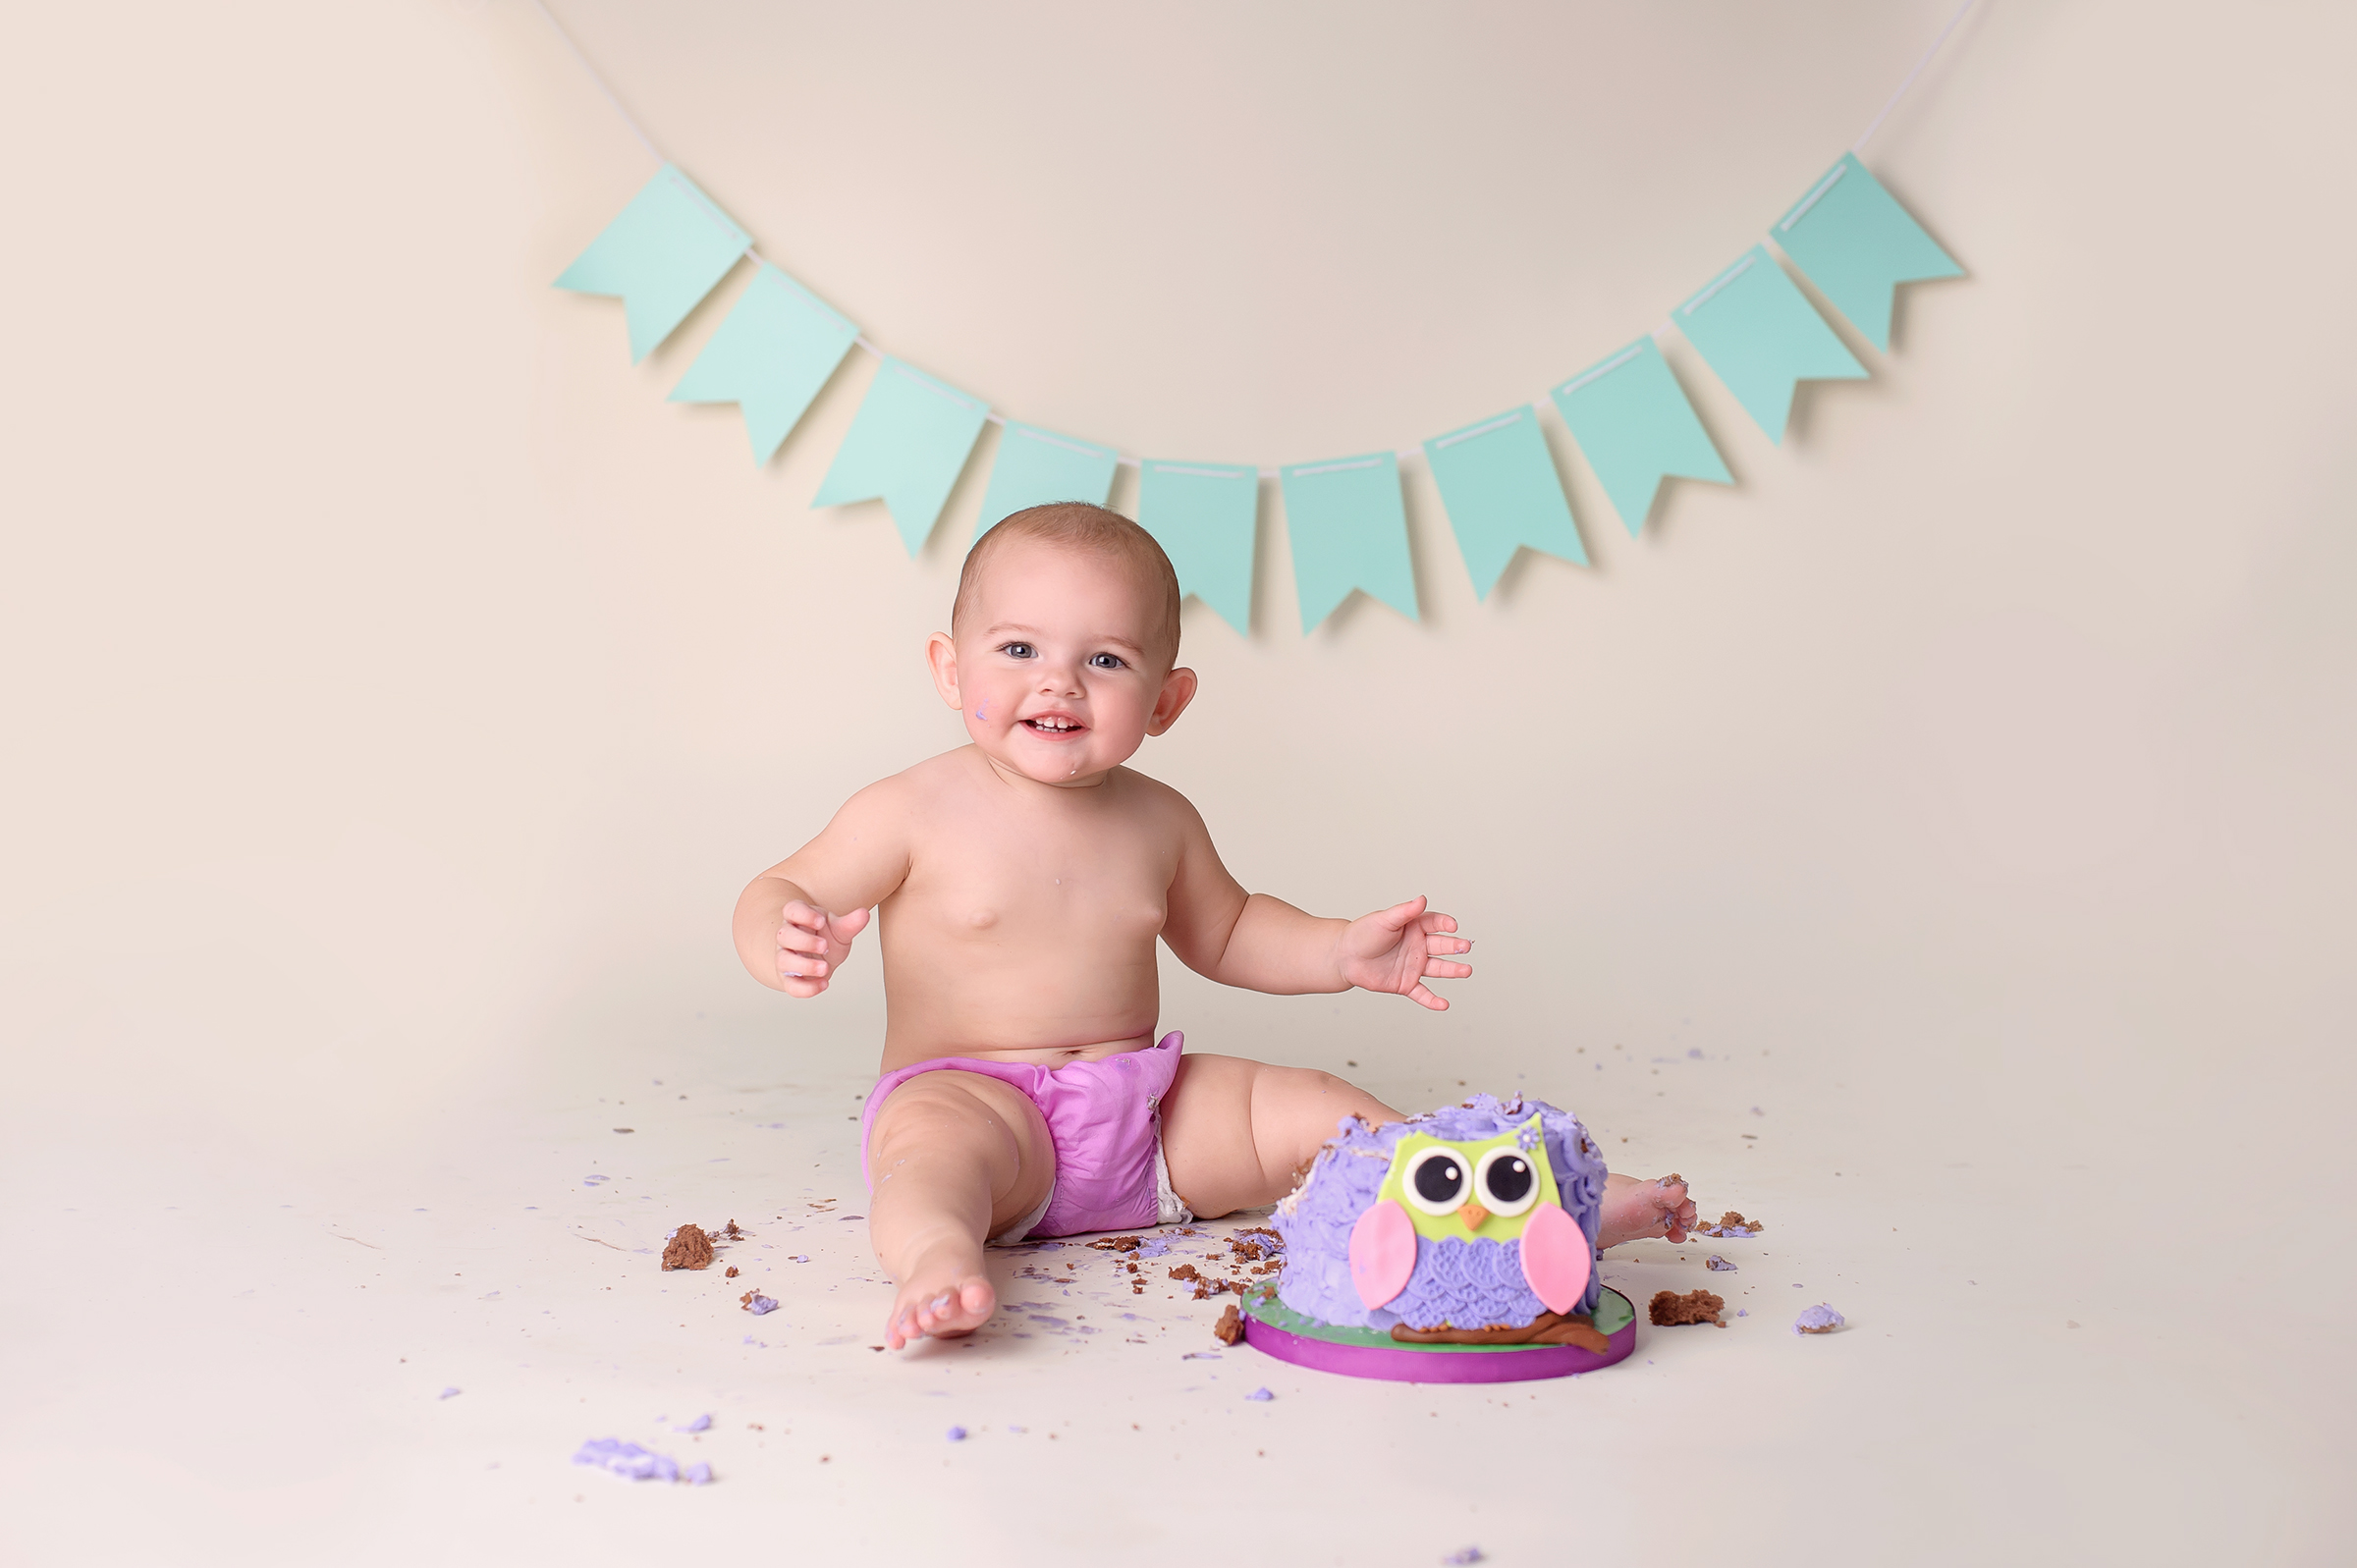 Cake Smash Photography Studio San Diego, CA